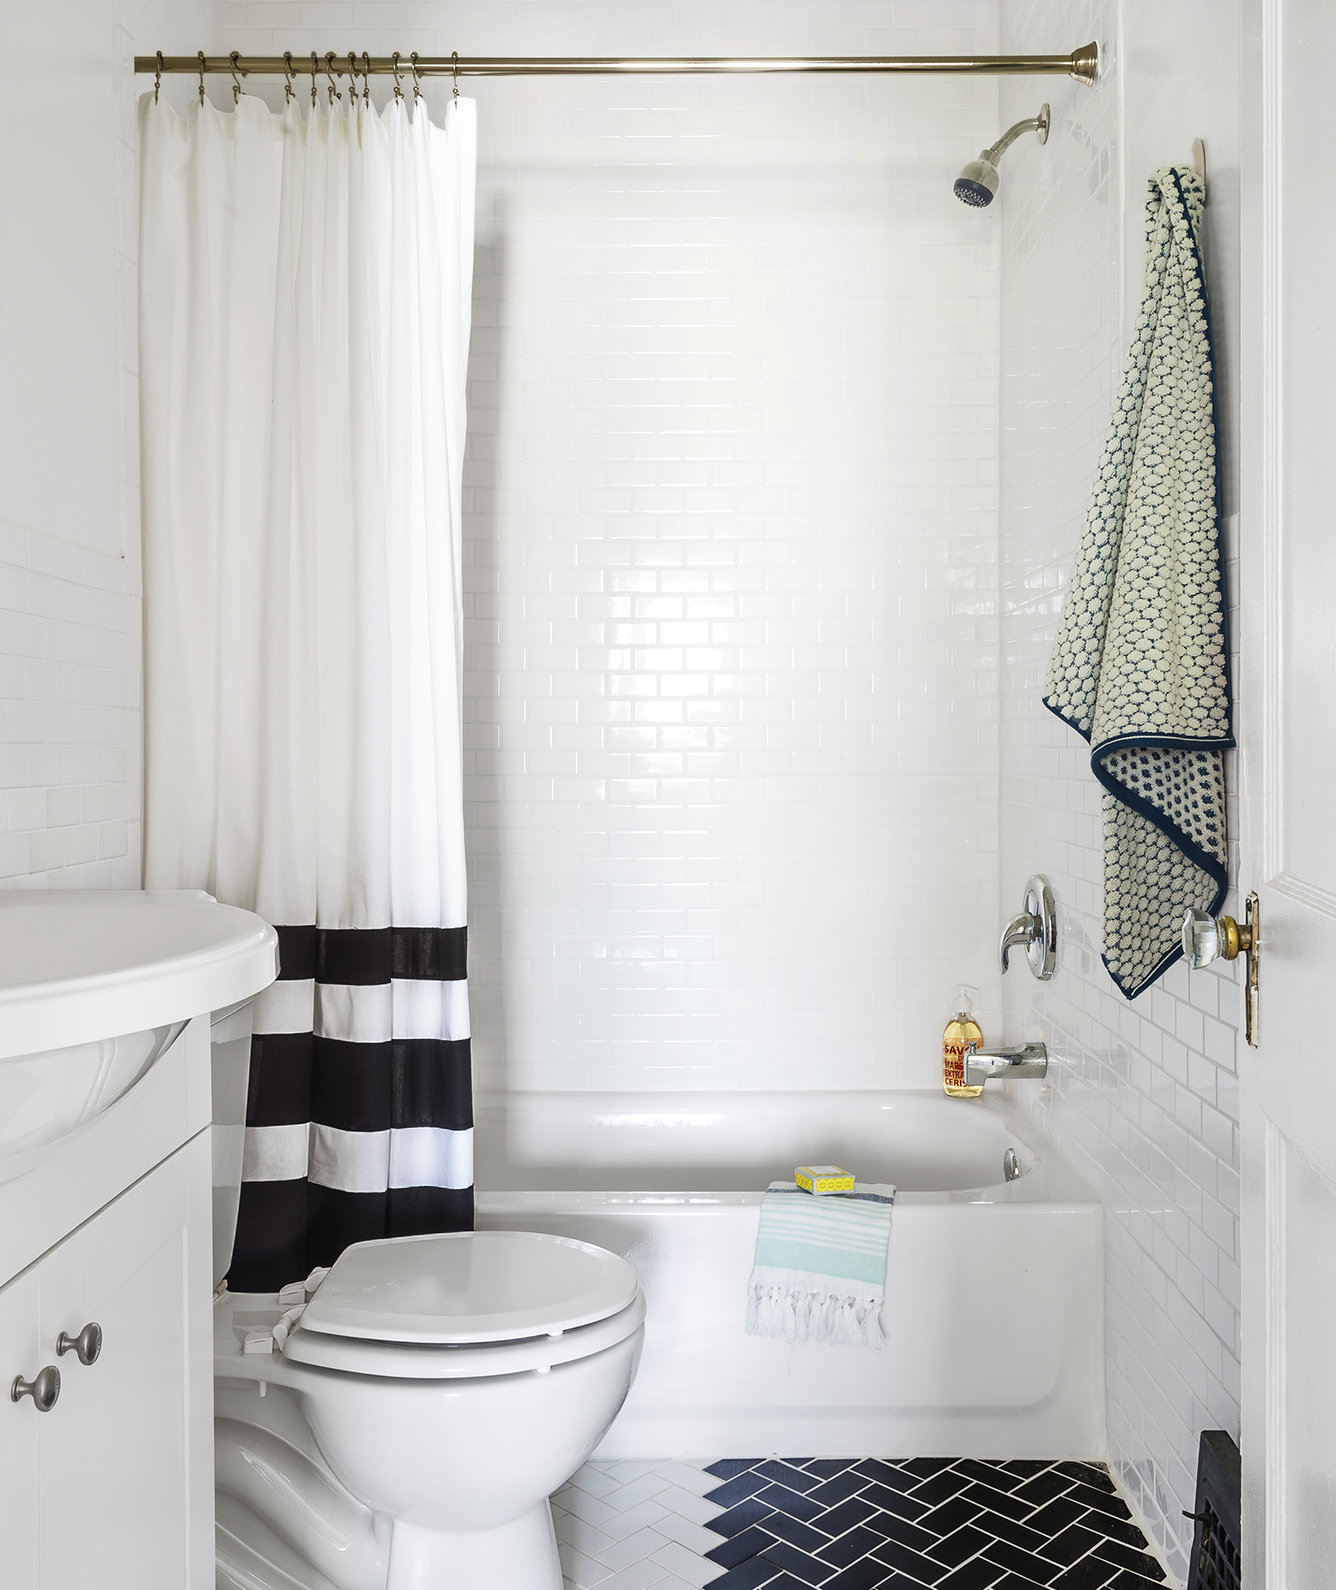 The shower easy cleaning tips to save you time real simple for Shower curtain savers